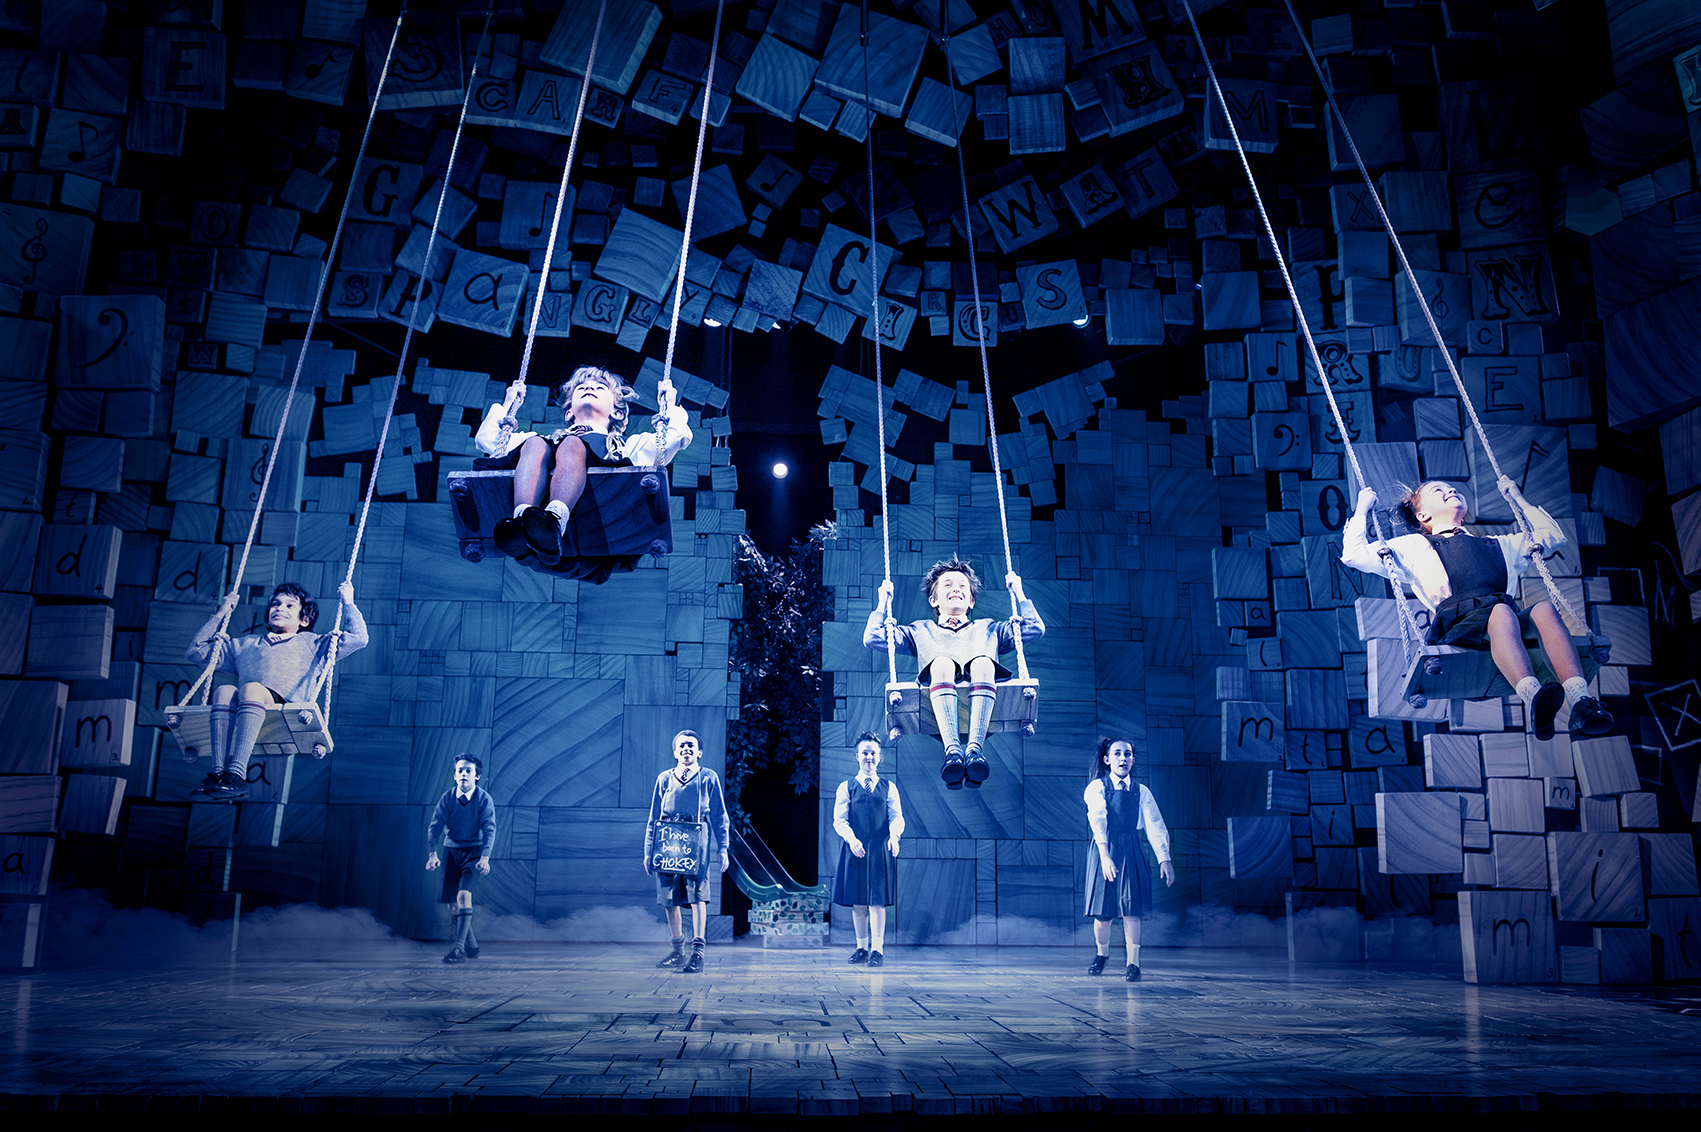 Matilda_The_Musical_Photo_by_Manuel_Harlan_c_The_Royal_Shakespeare_Company.jpg